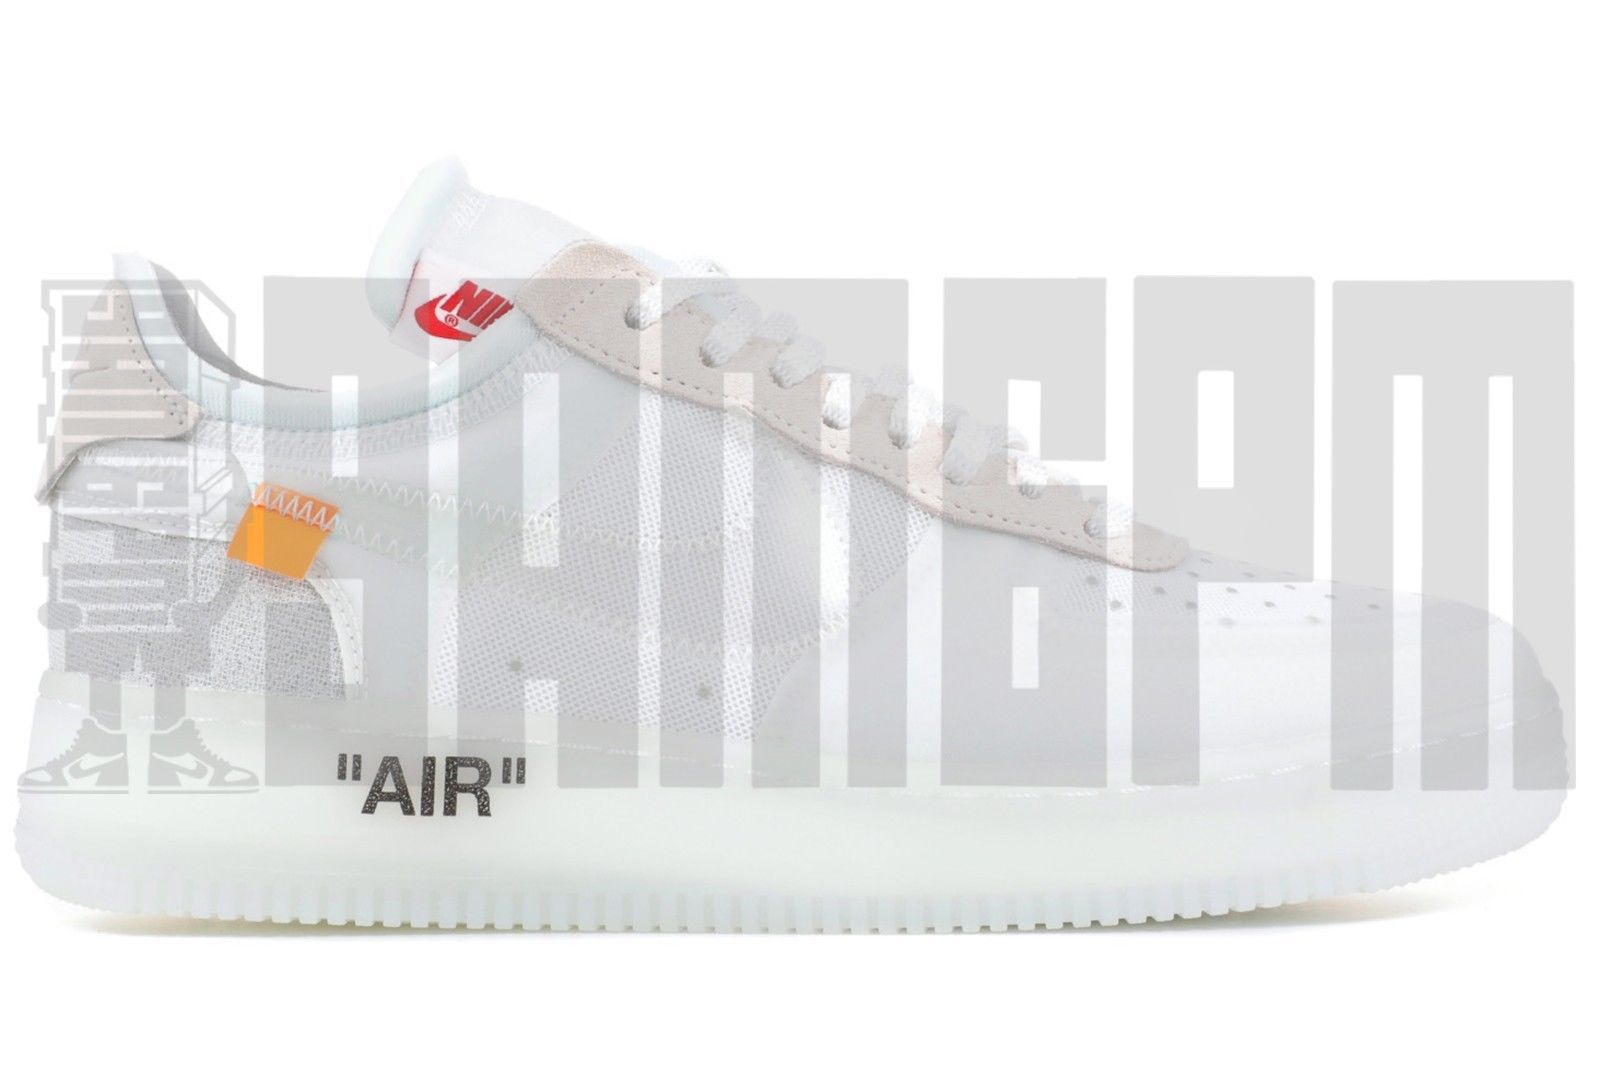 nike air force 1 basso biancastro 7 8 9 10 11 12 white dieci offwhite